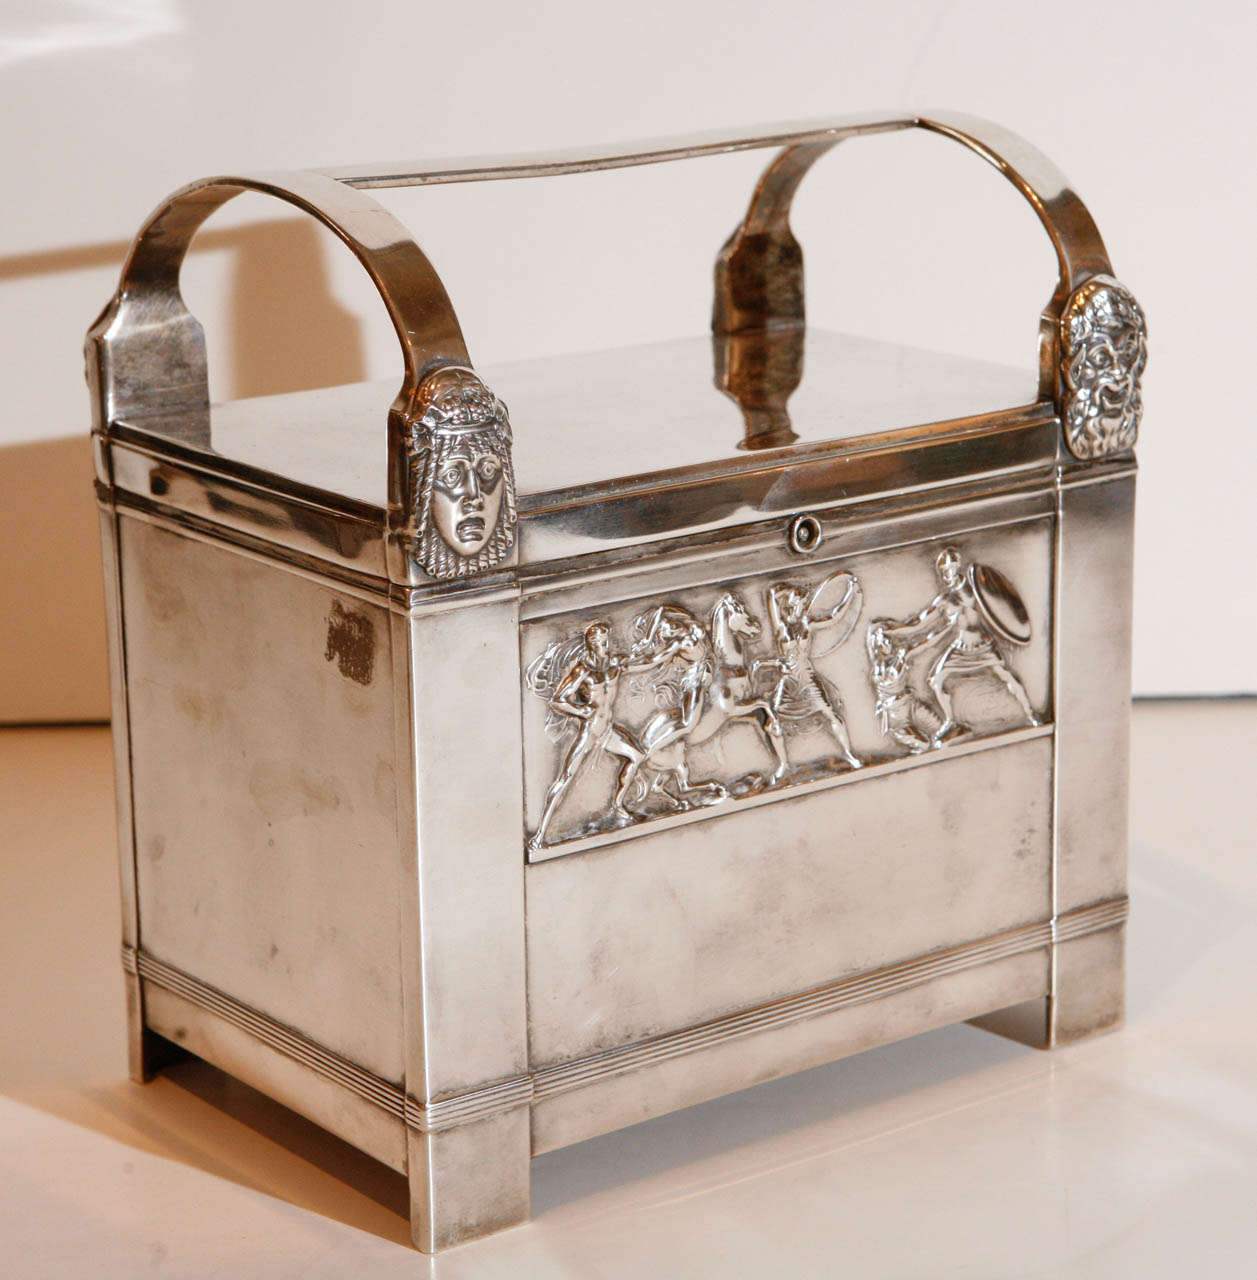 Silver plated, art-deco humidor featuring reproductions of the famous Bassae Frieze which depicts a battle between the Trojans and the Amazons.